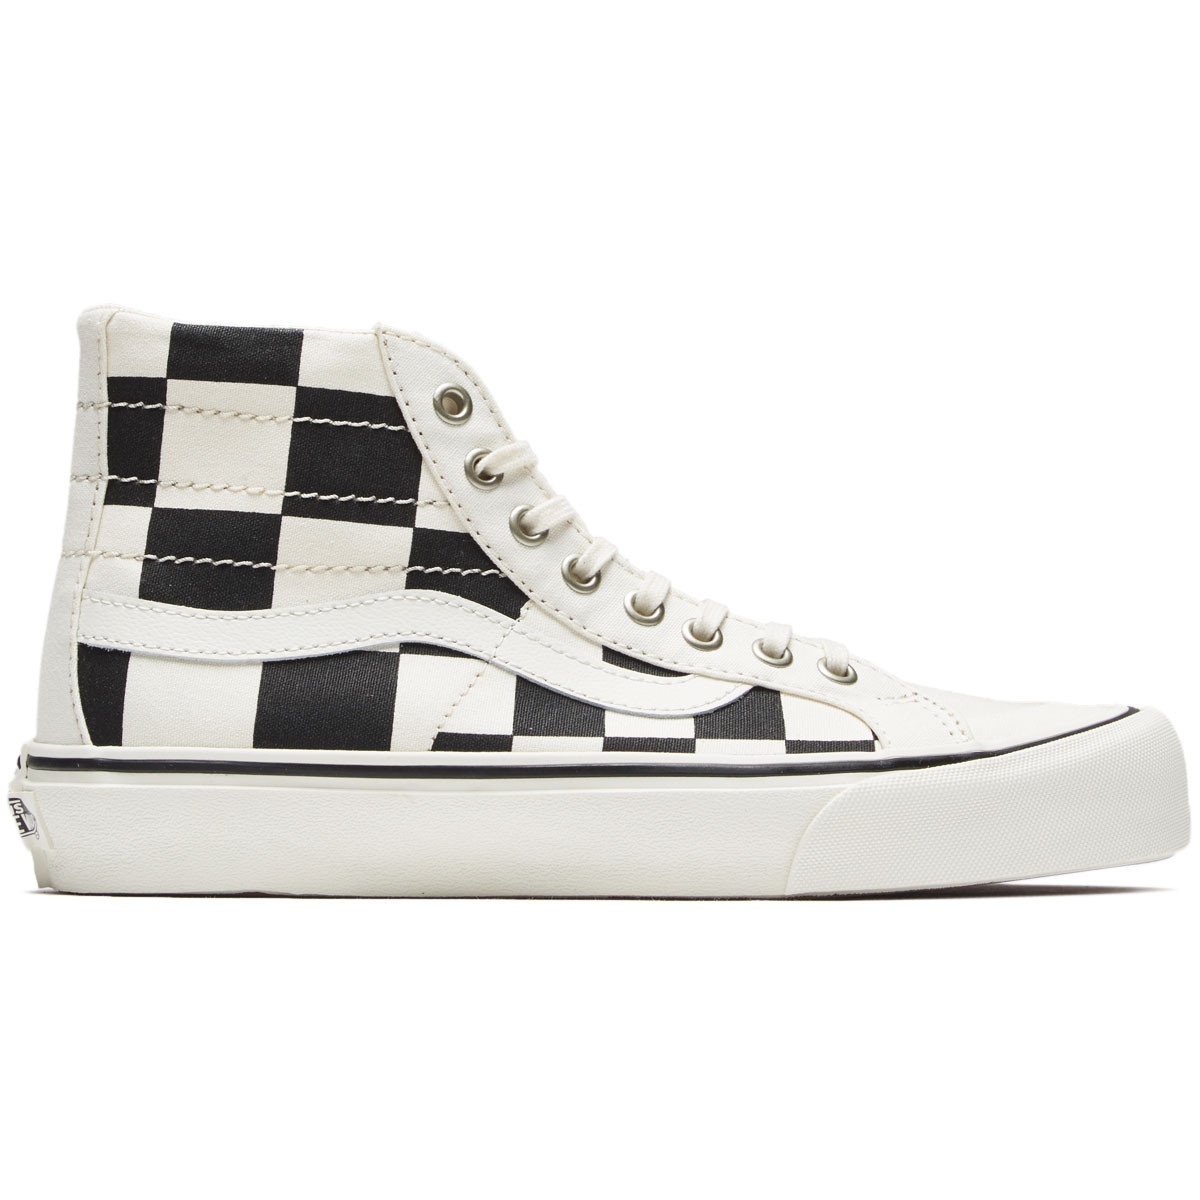 2ff5b7f5233a38 Vans Womens Sk8-Hi 138 Decon SF Shoes - Black White - 4.0